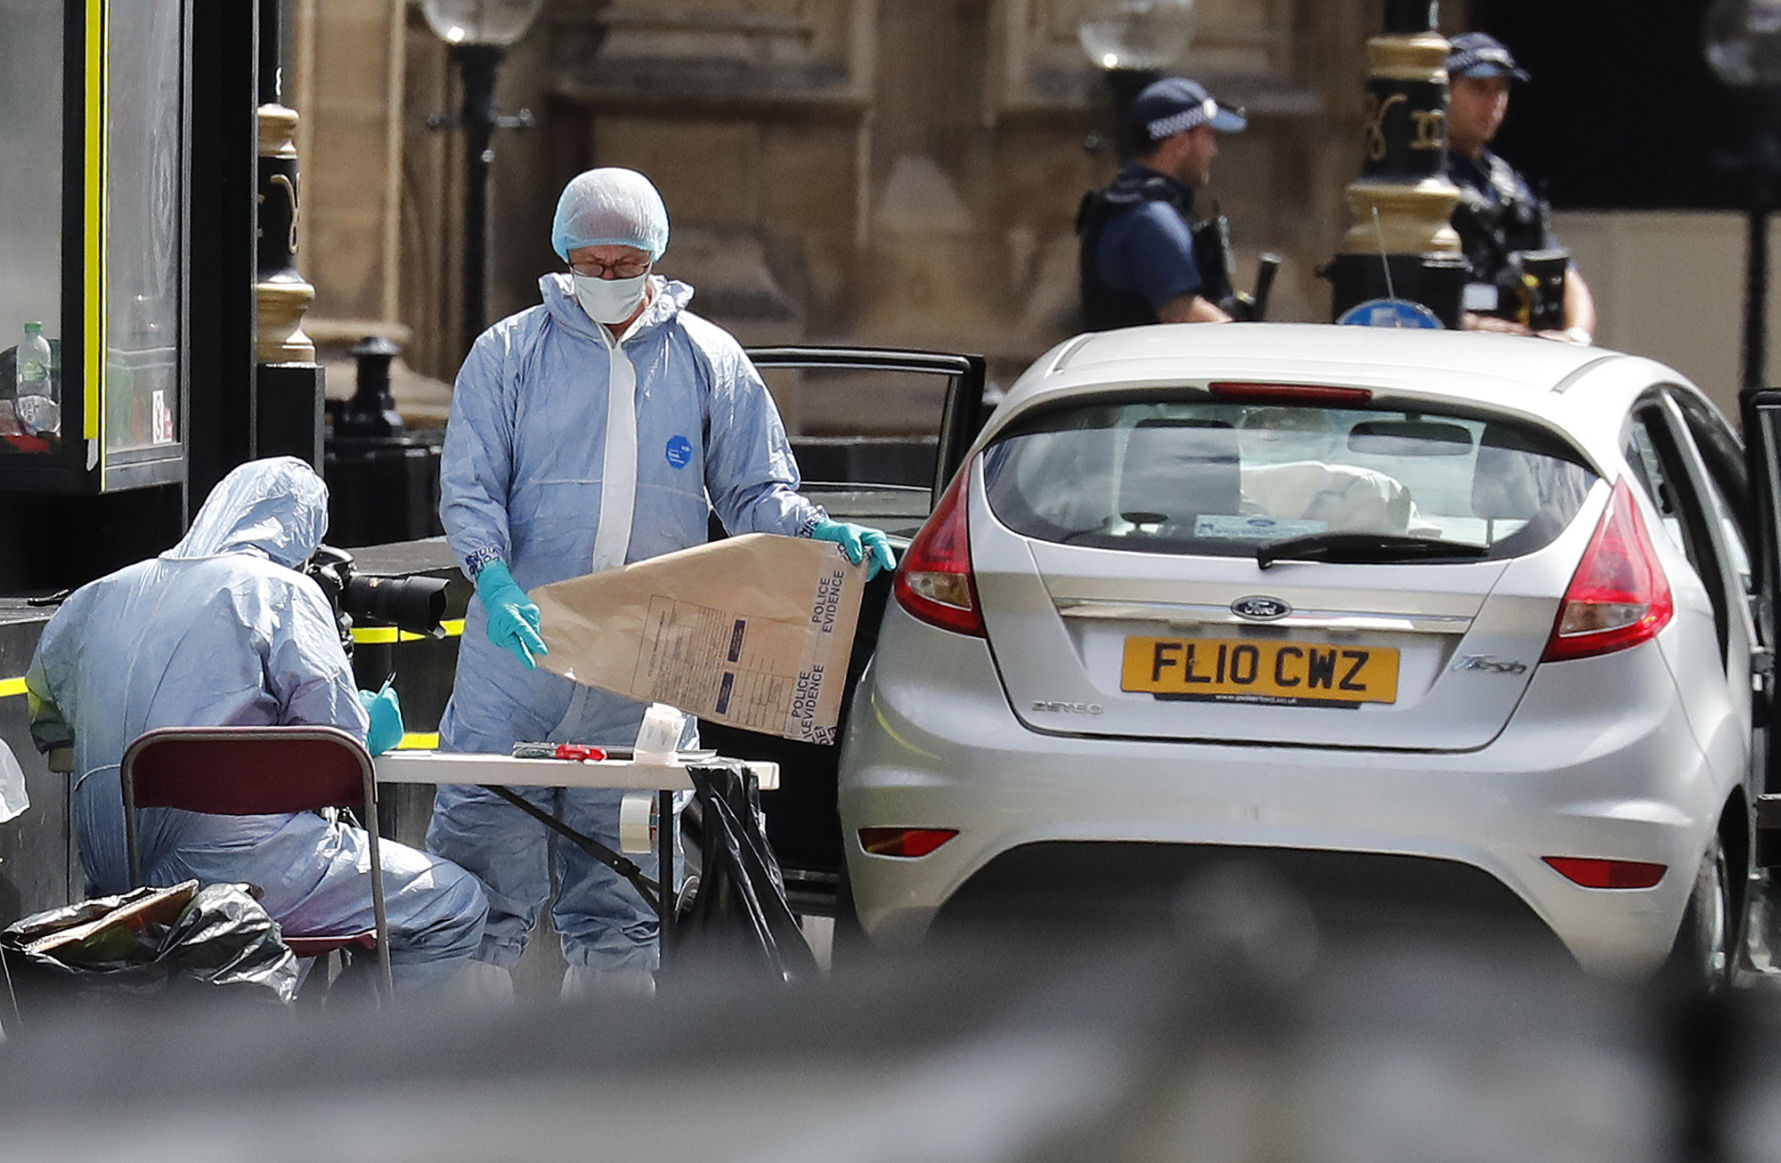 Crash outside UK Houses of Parliament treated as terror incident: police   WDEL